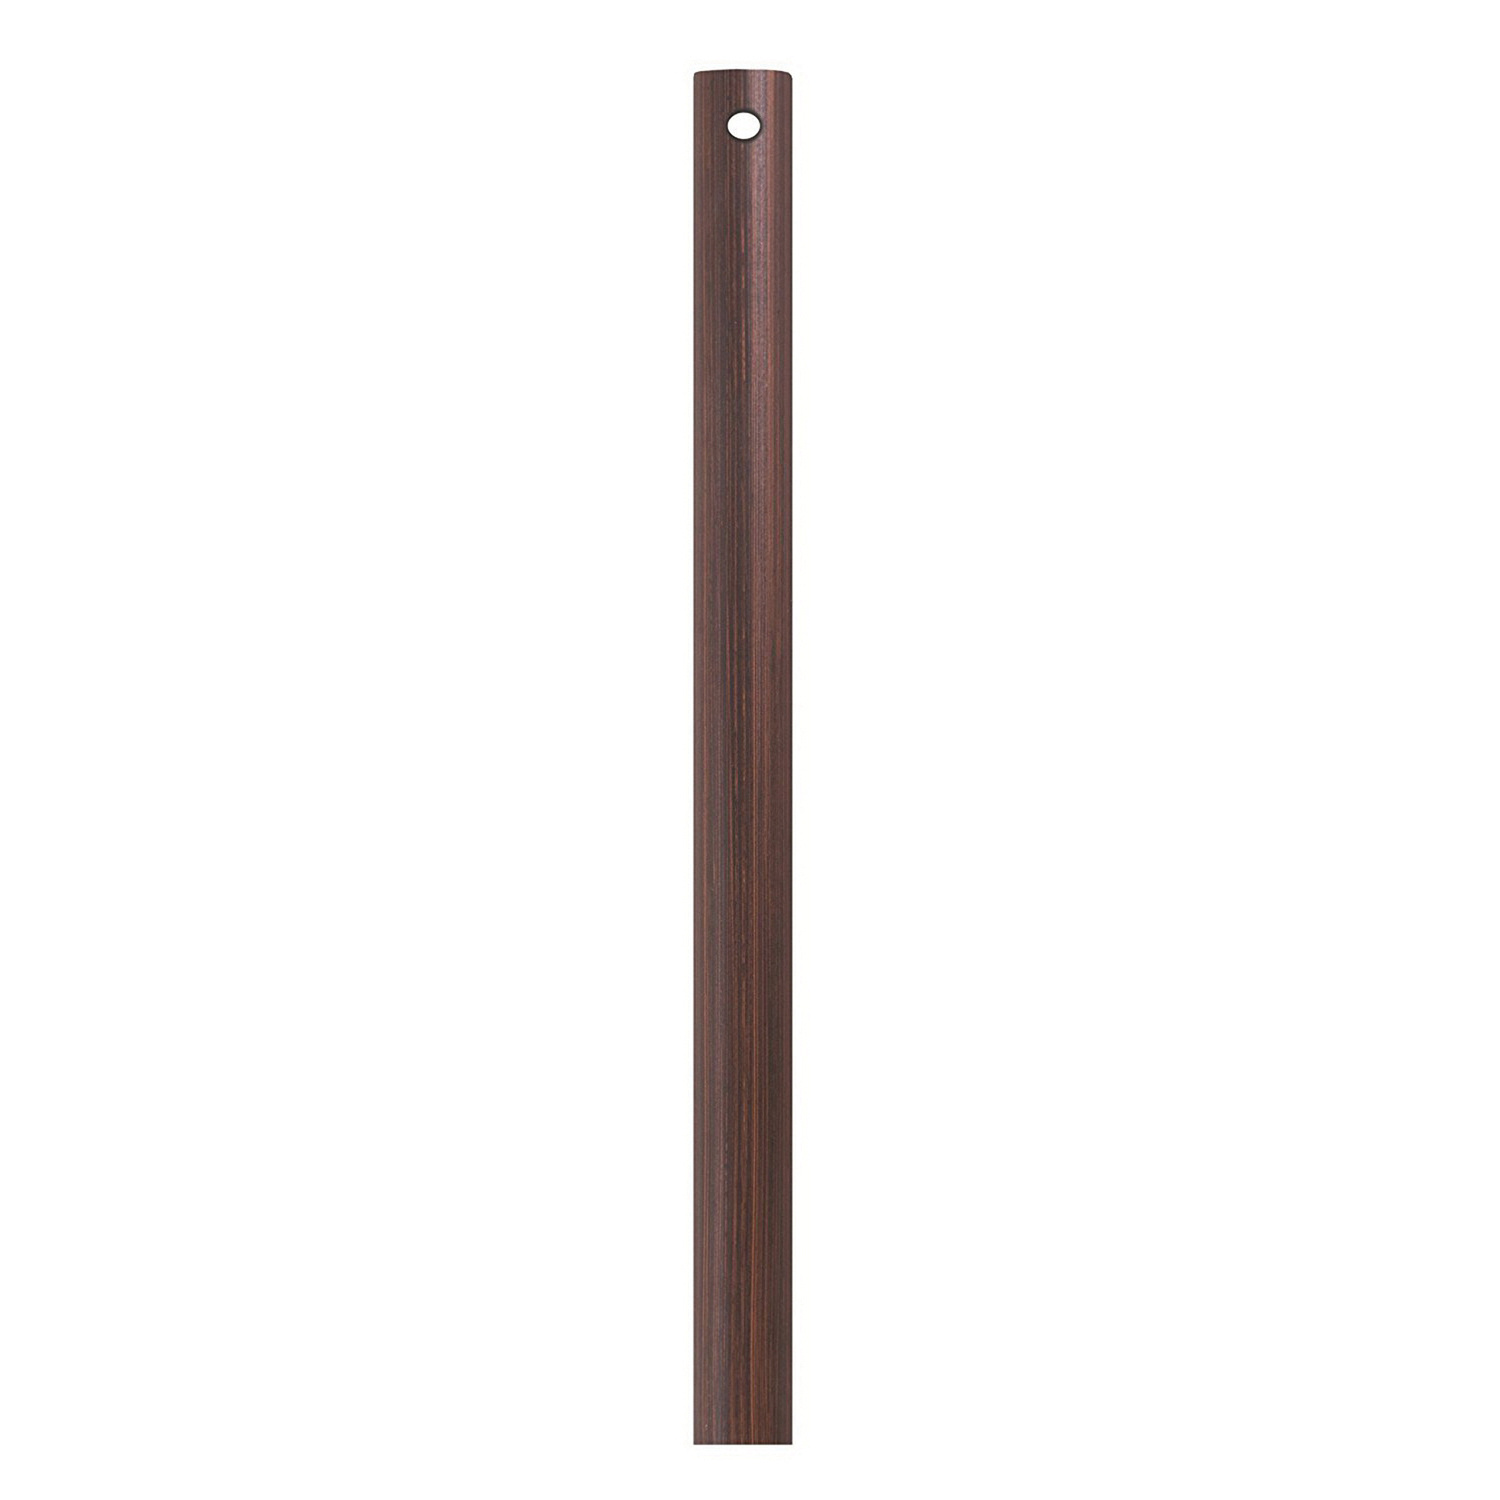 Emerson CFDR25ORB Fan Downrod 1/2 Inch x 2-1/2 Inch Oil Rubbed Bronze For Ceiling Fans